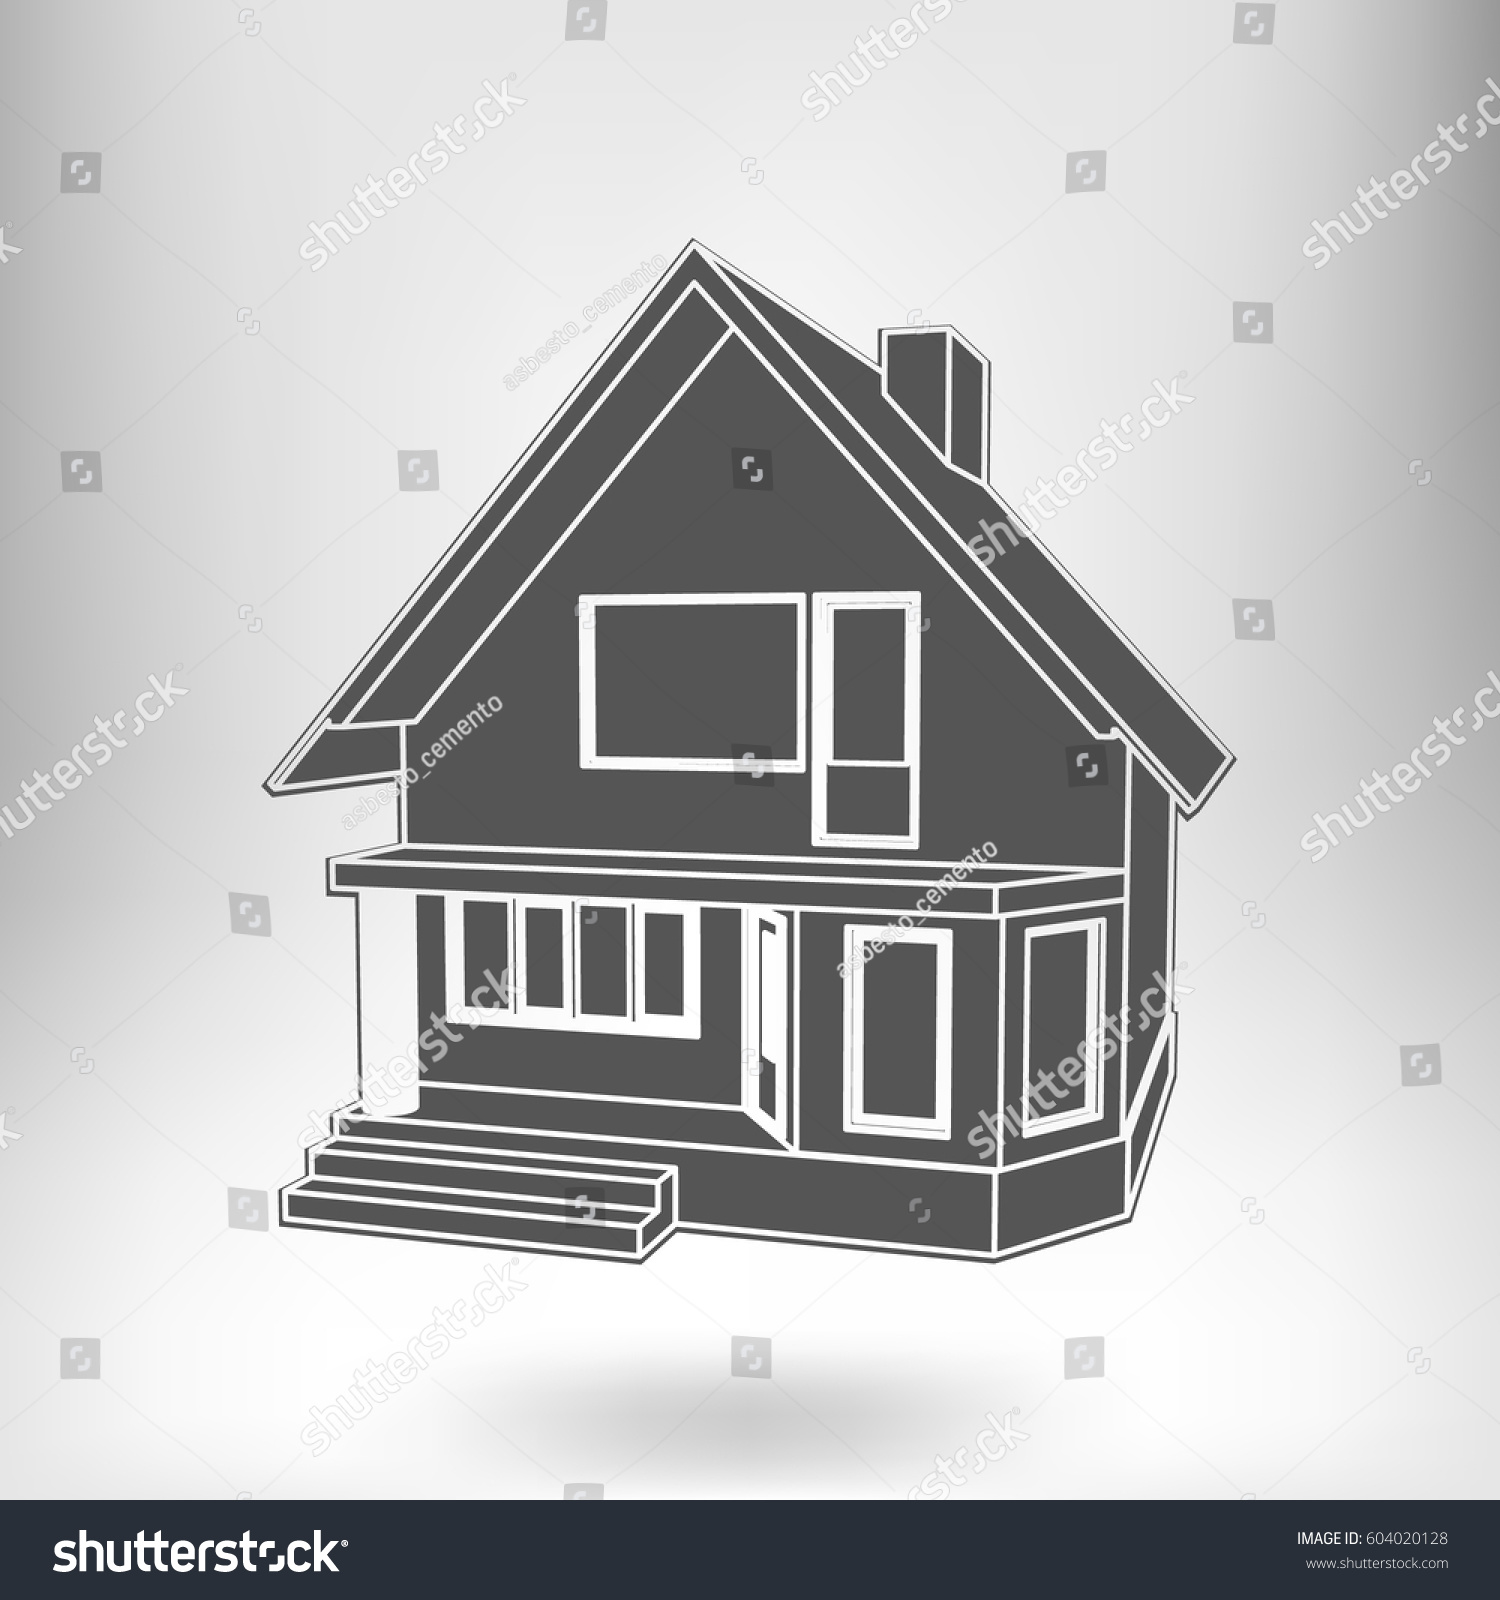 Building perspective 3d drawing suburban house stock vector 604020128 shutterstock 3d house drawing